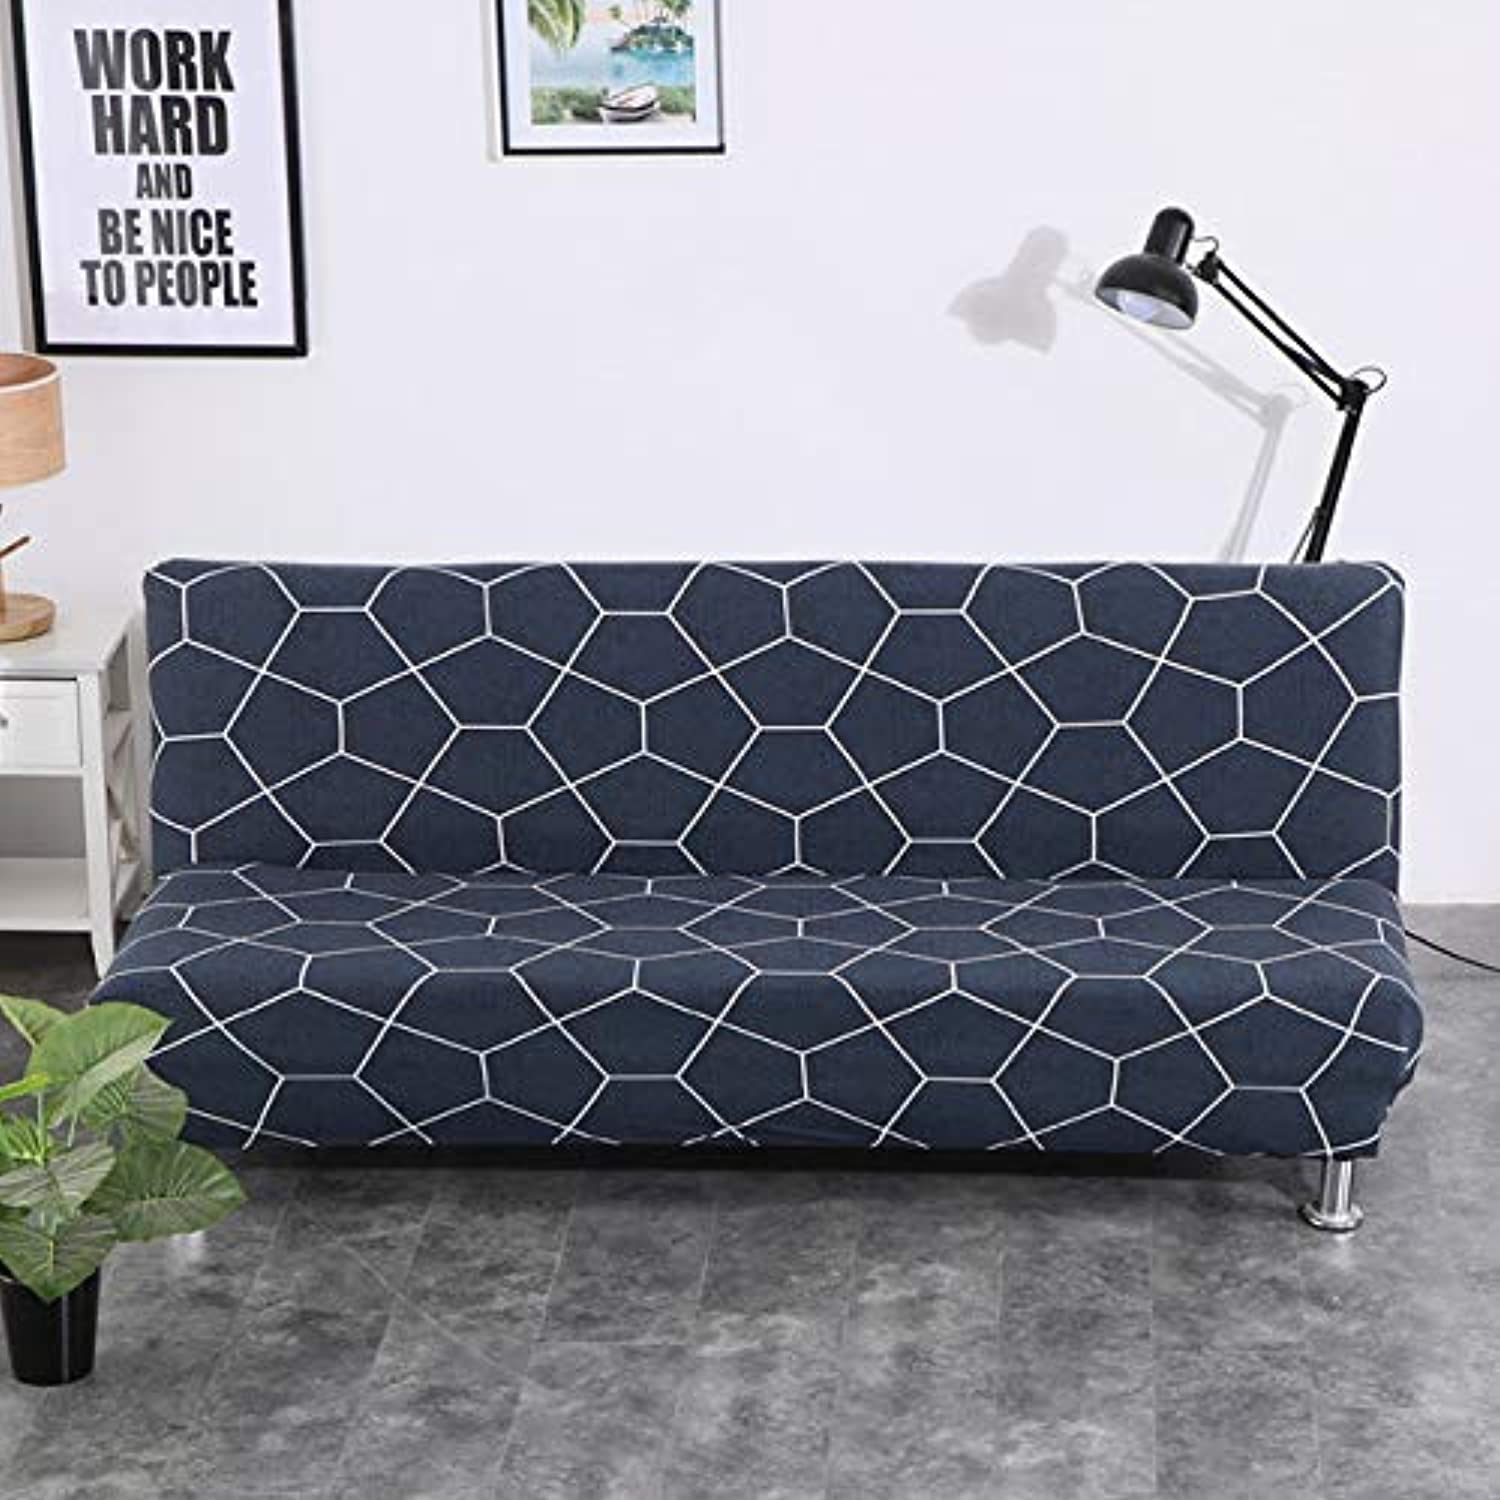 Elastic Sofa Bed Covers for Living Room Sofa Towel Slip-Resistant Sofa Bed Cover Cotton Strech Slipcover   colour24, Large 180 to 200cm